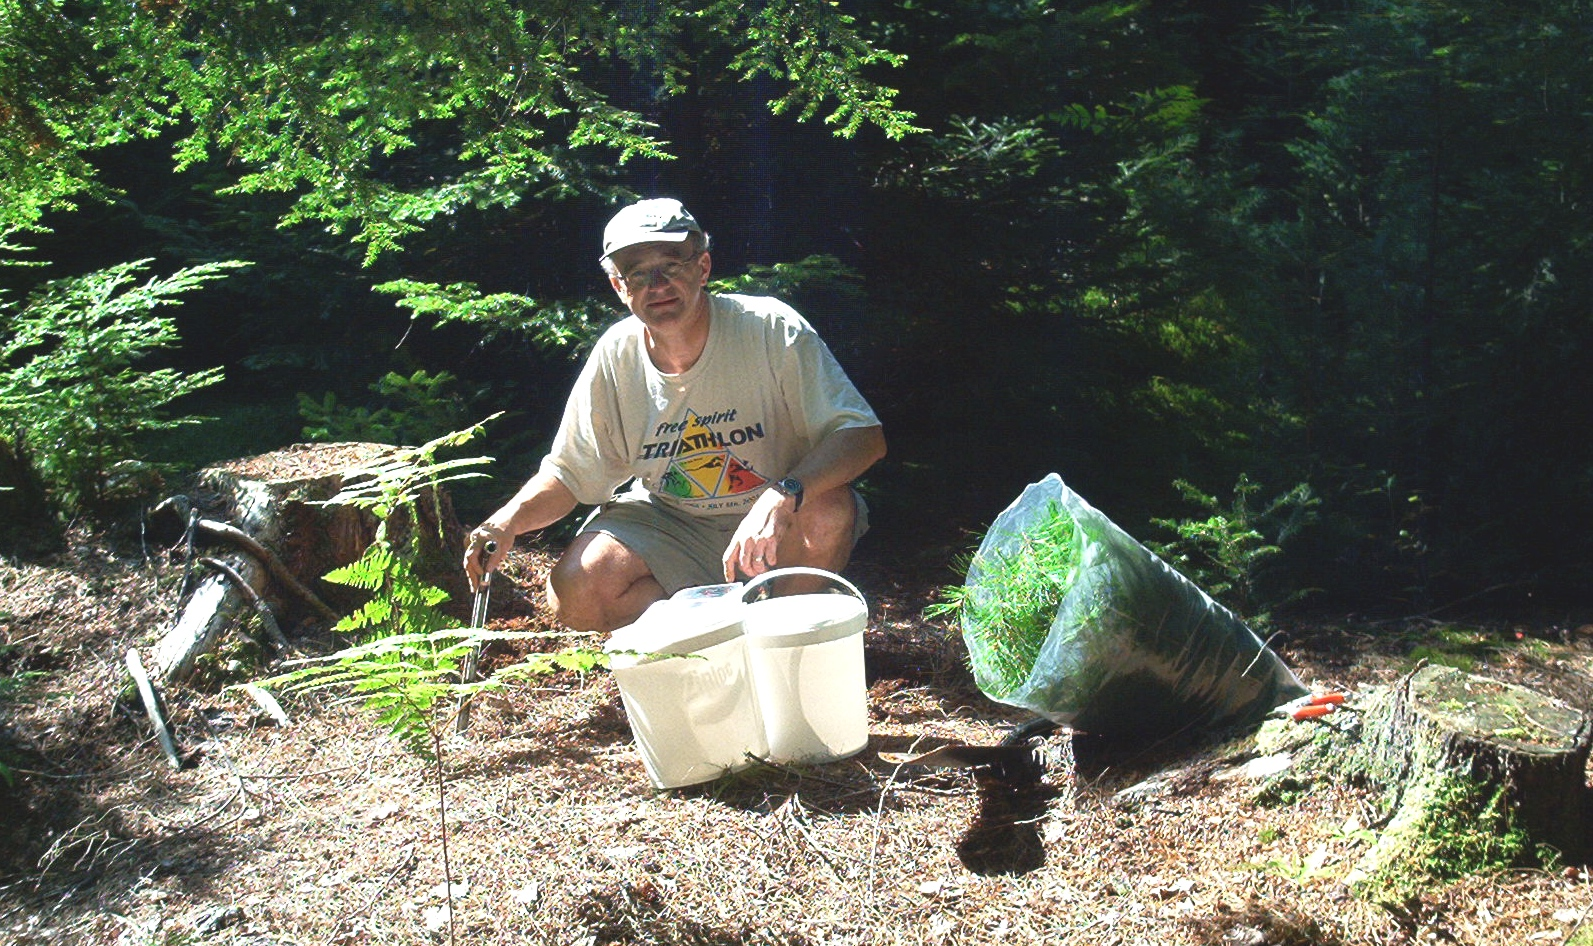 Steve Sheppard sampling vegetation and soils in Nova Scotia.